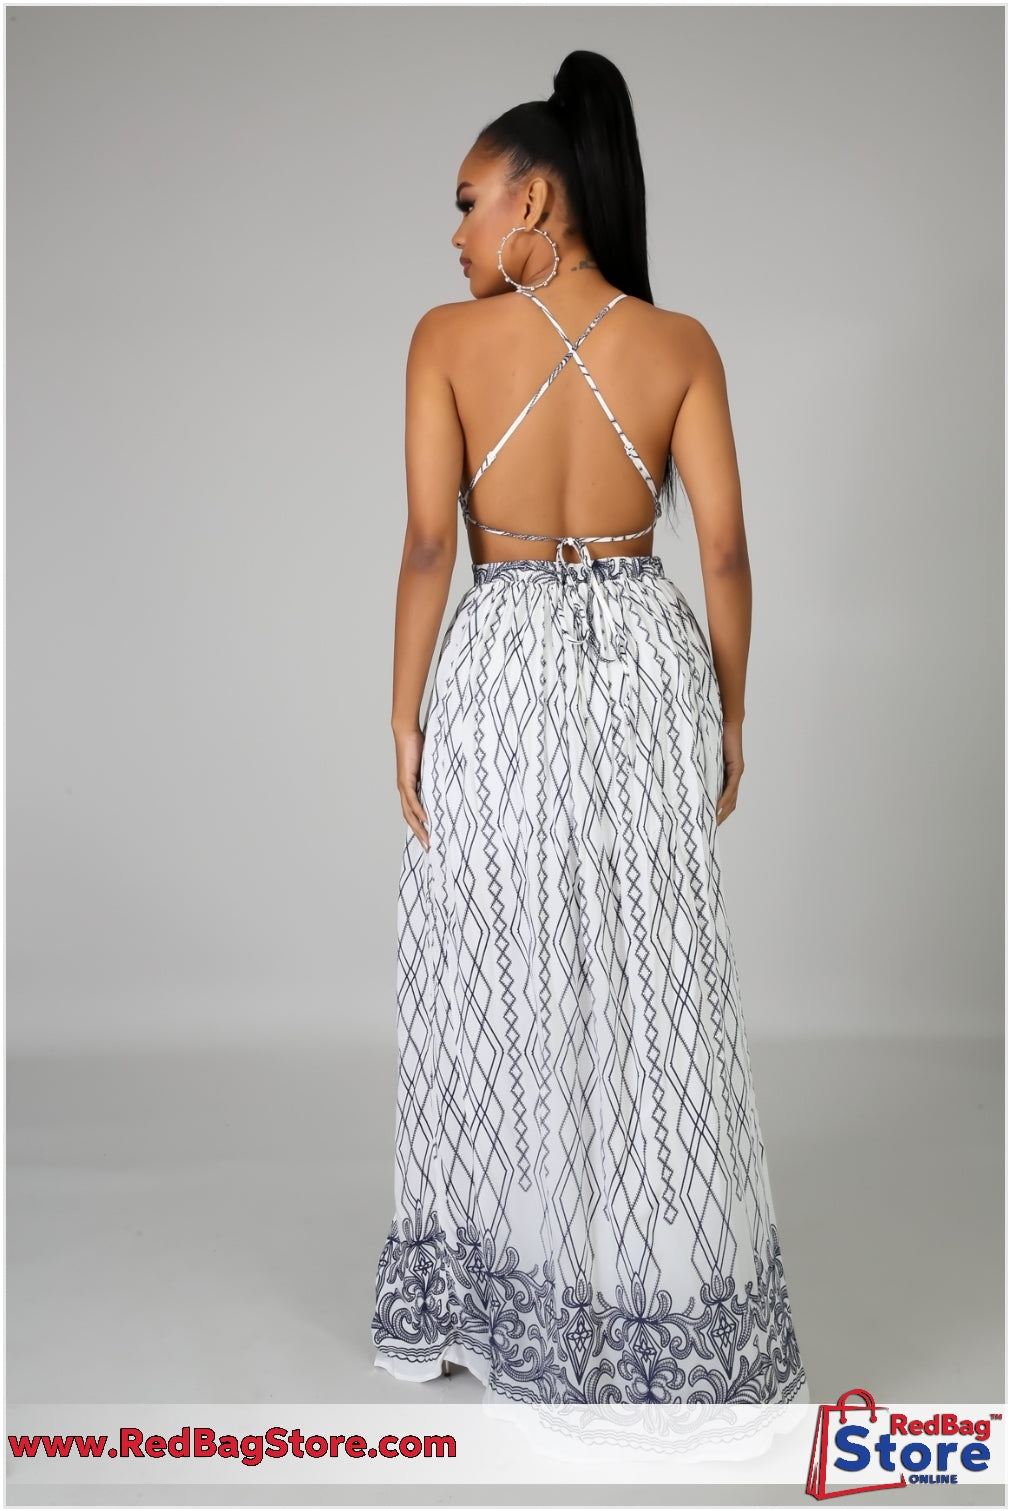 Dream Slit Maxi Dress